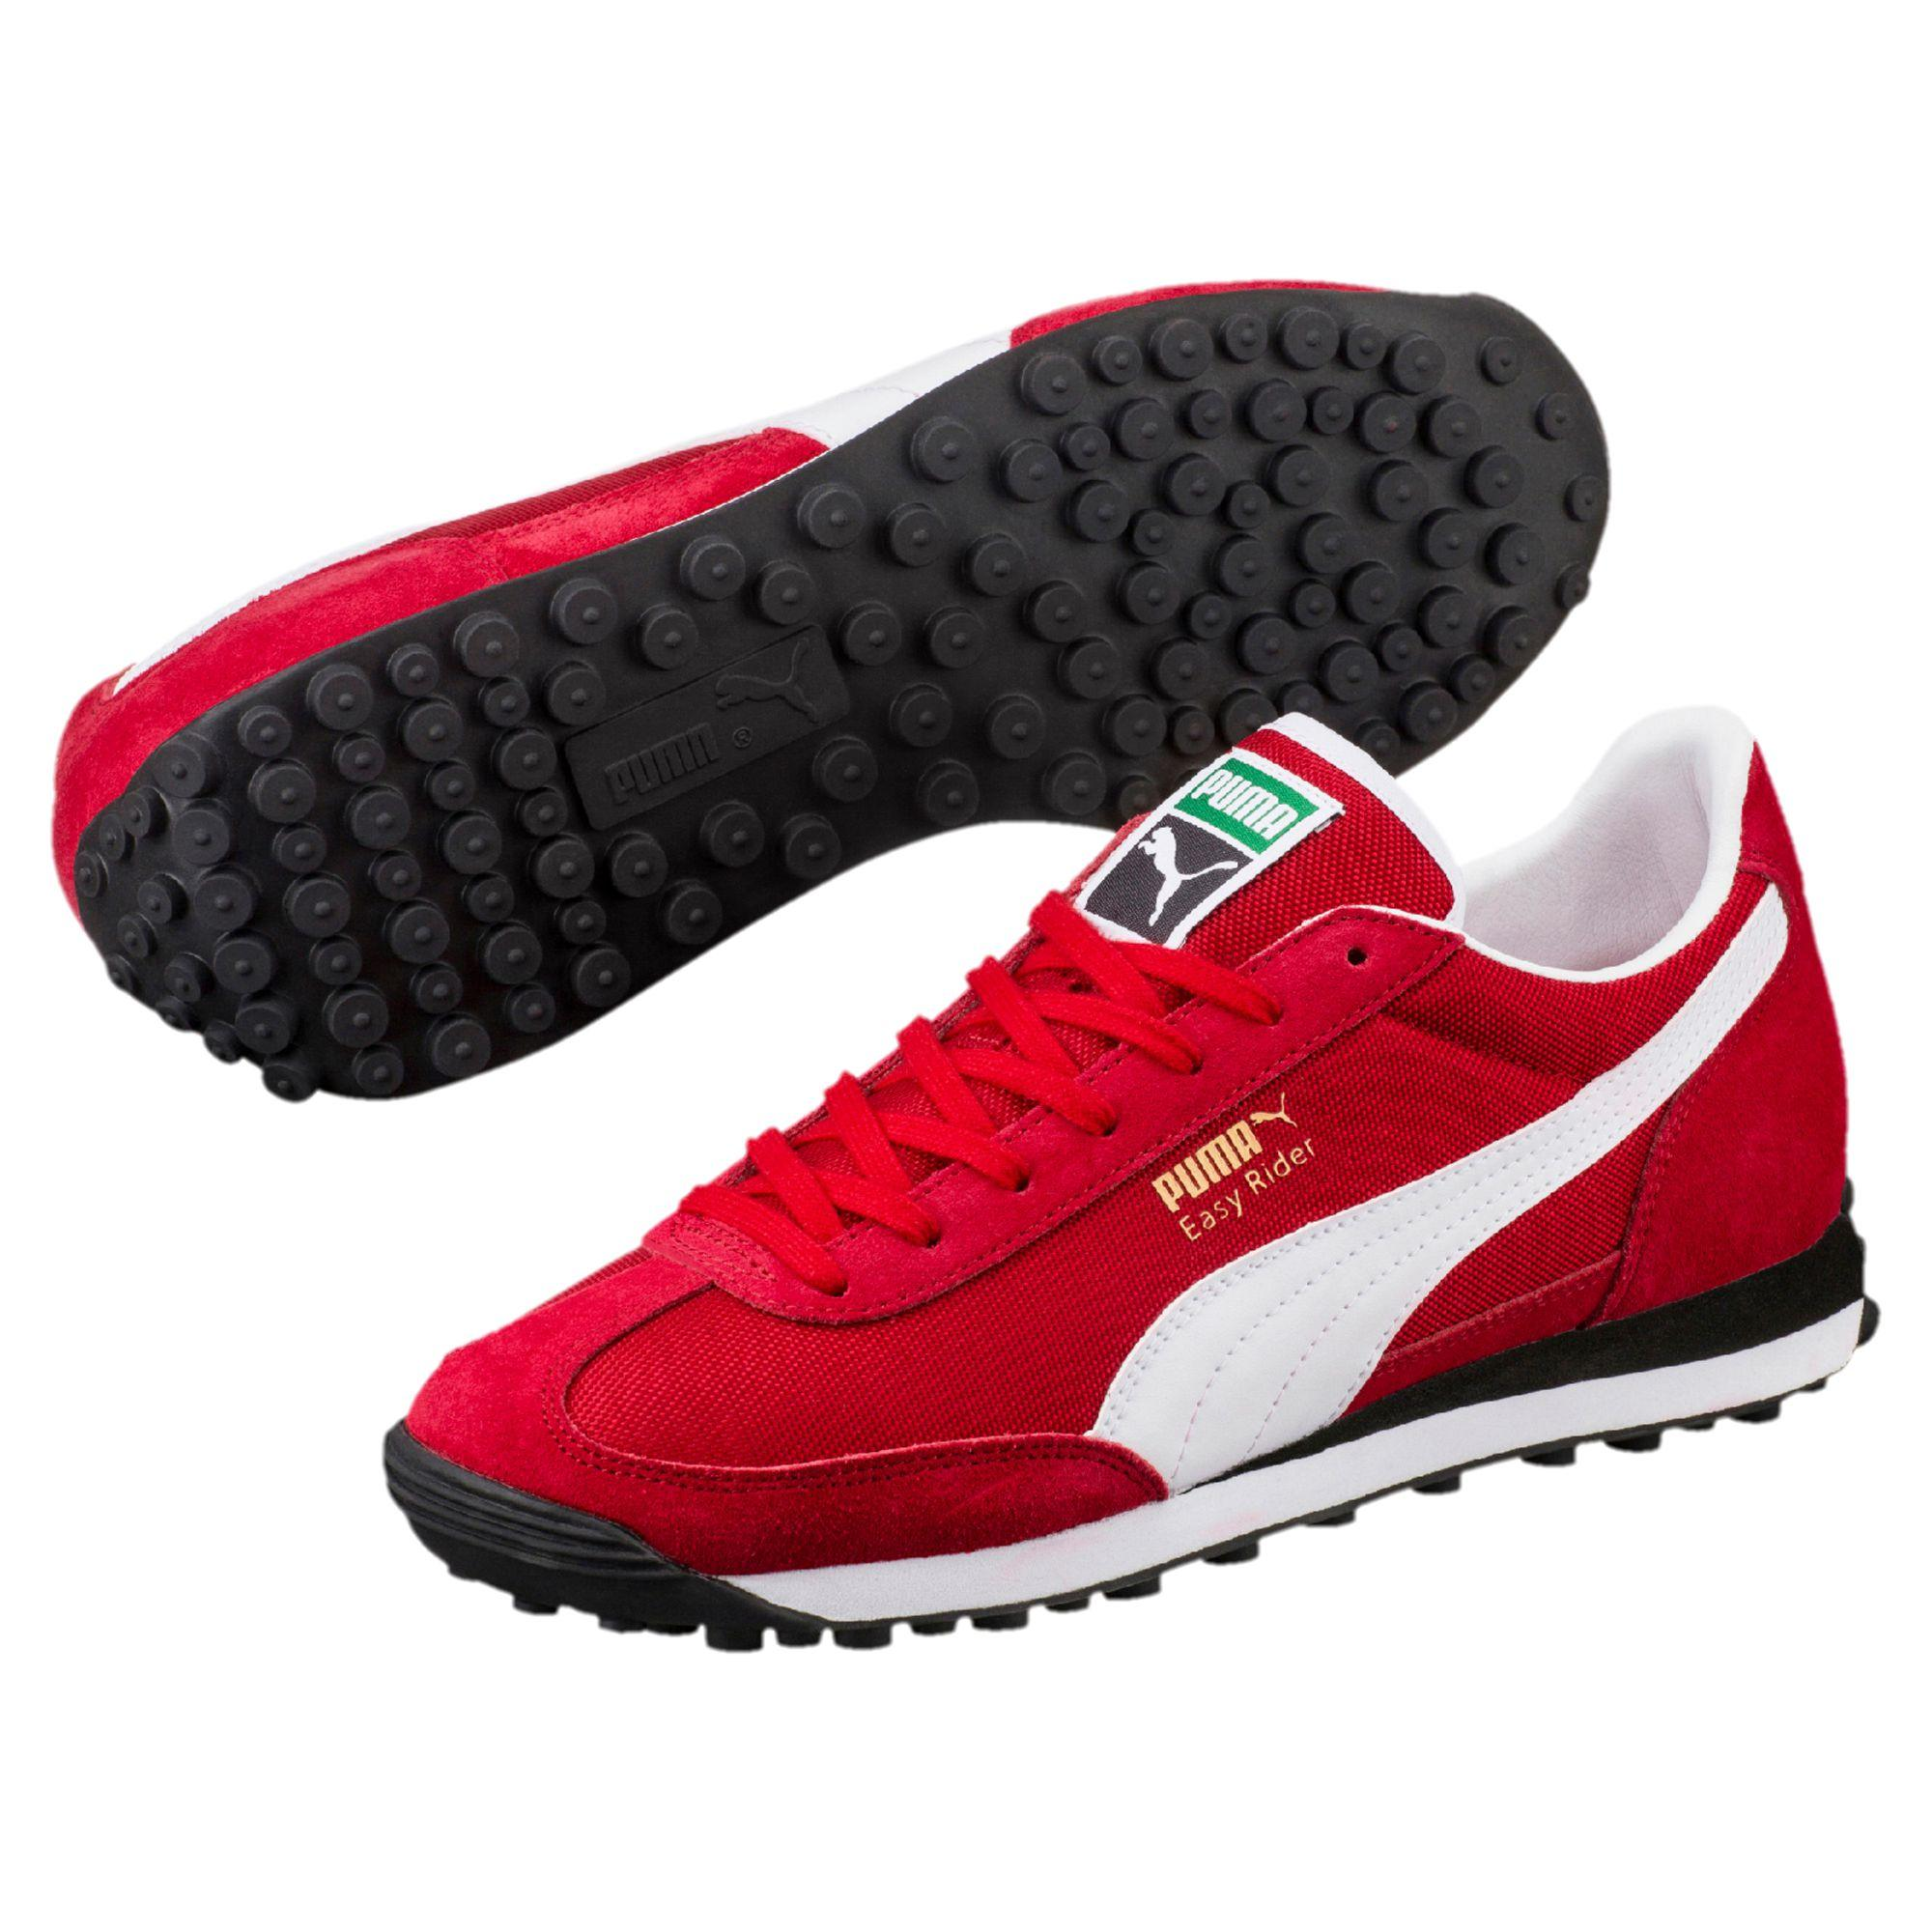 44582b1dc53d58 Lyst - PUMA Easy Rider Men s Sneakers in Red for Men